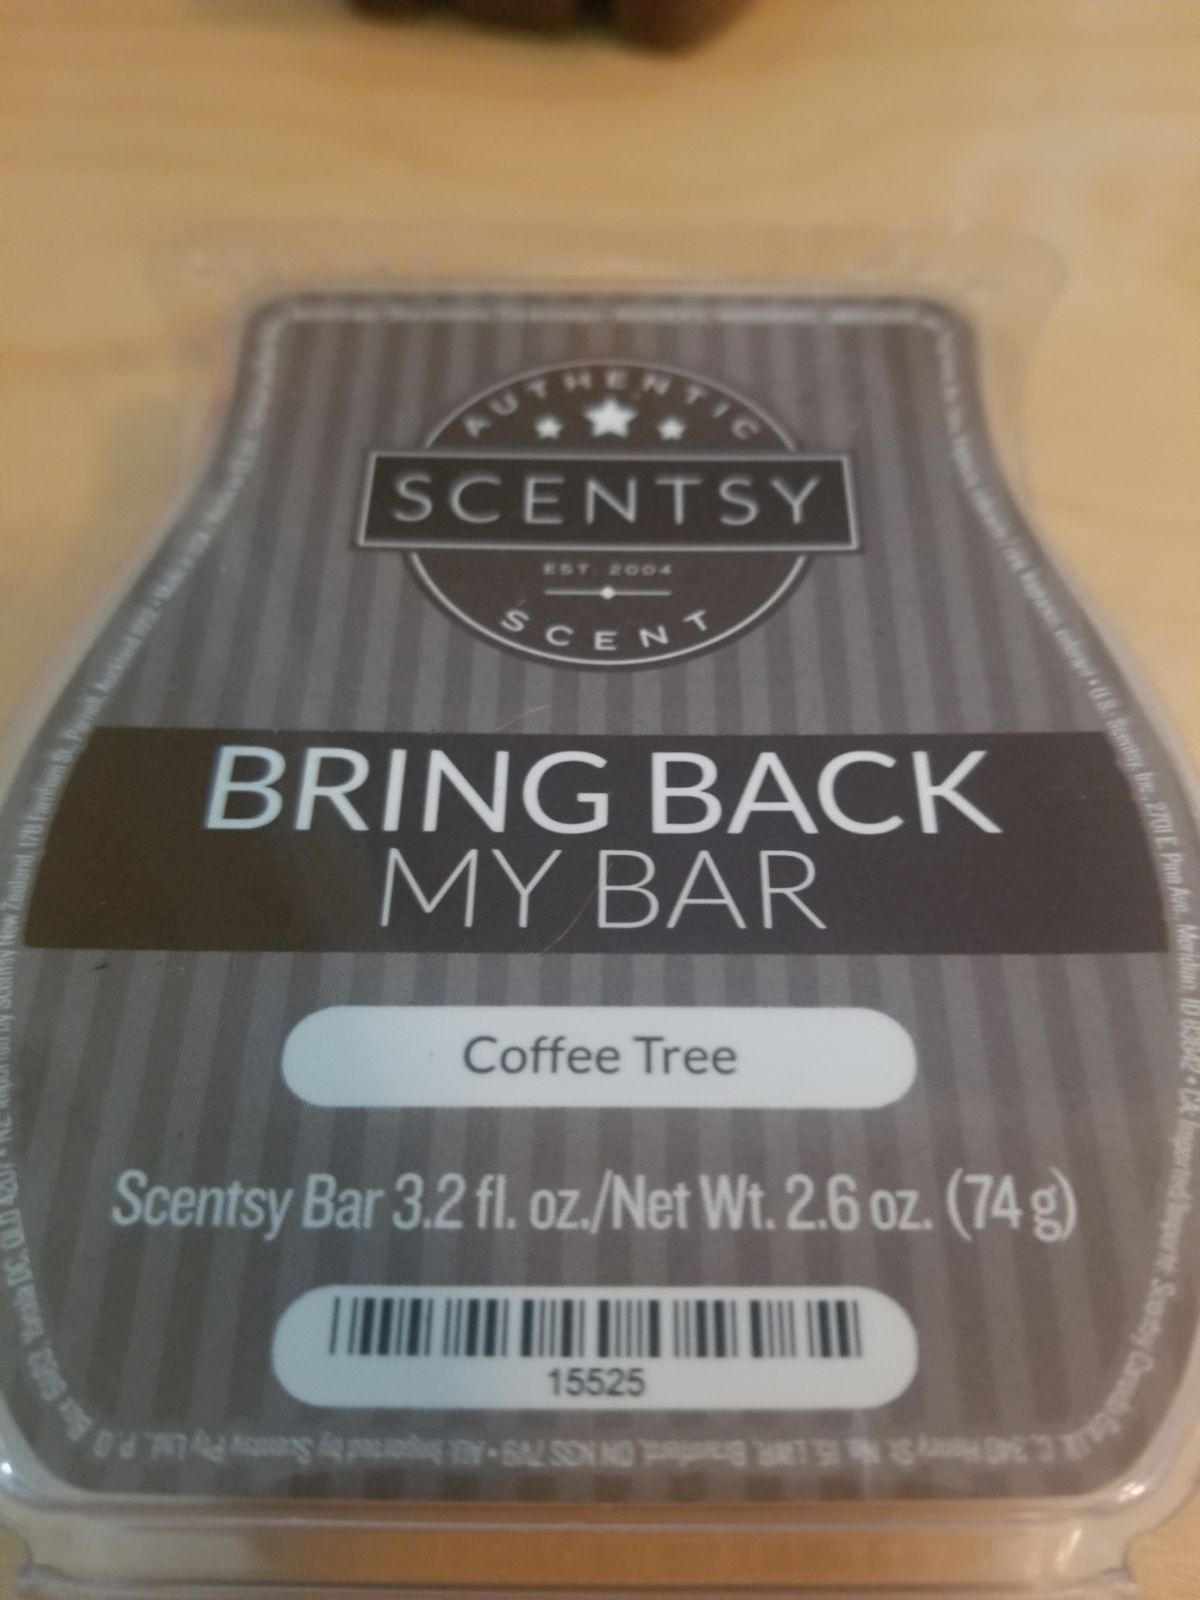 New Scentsy Coffee Tree Bar Thanks For Looking All Items Ship Out